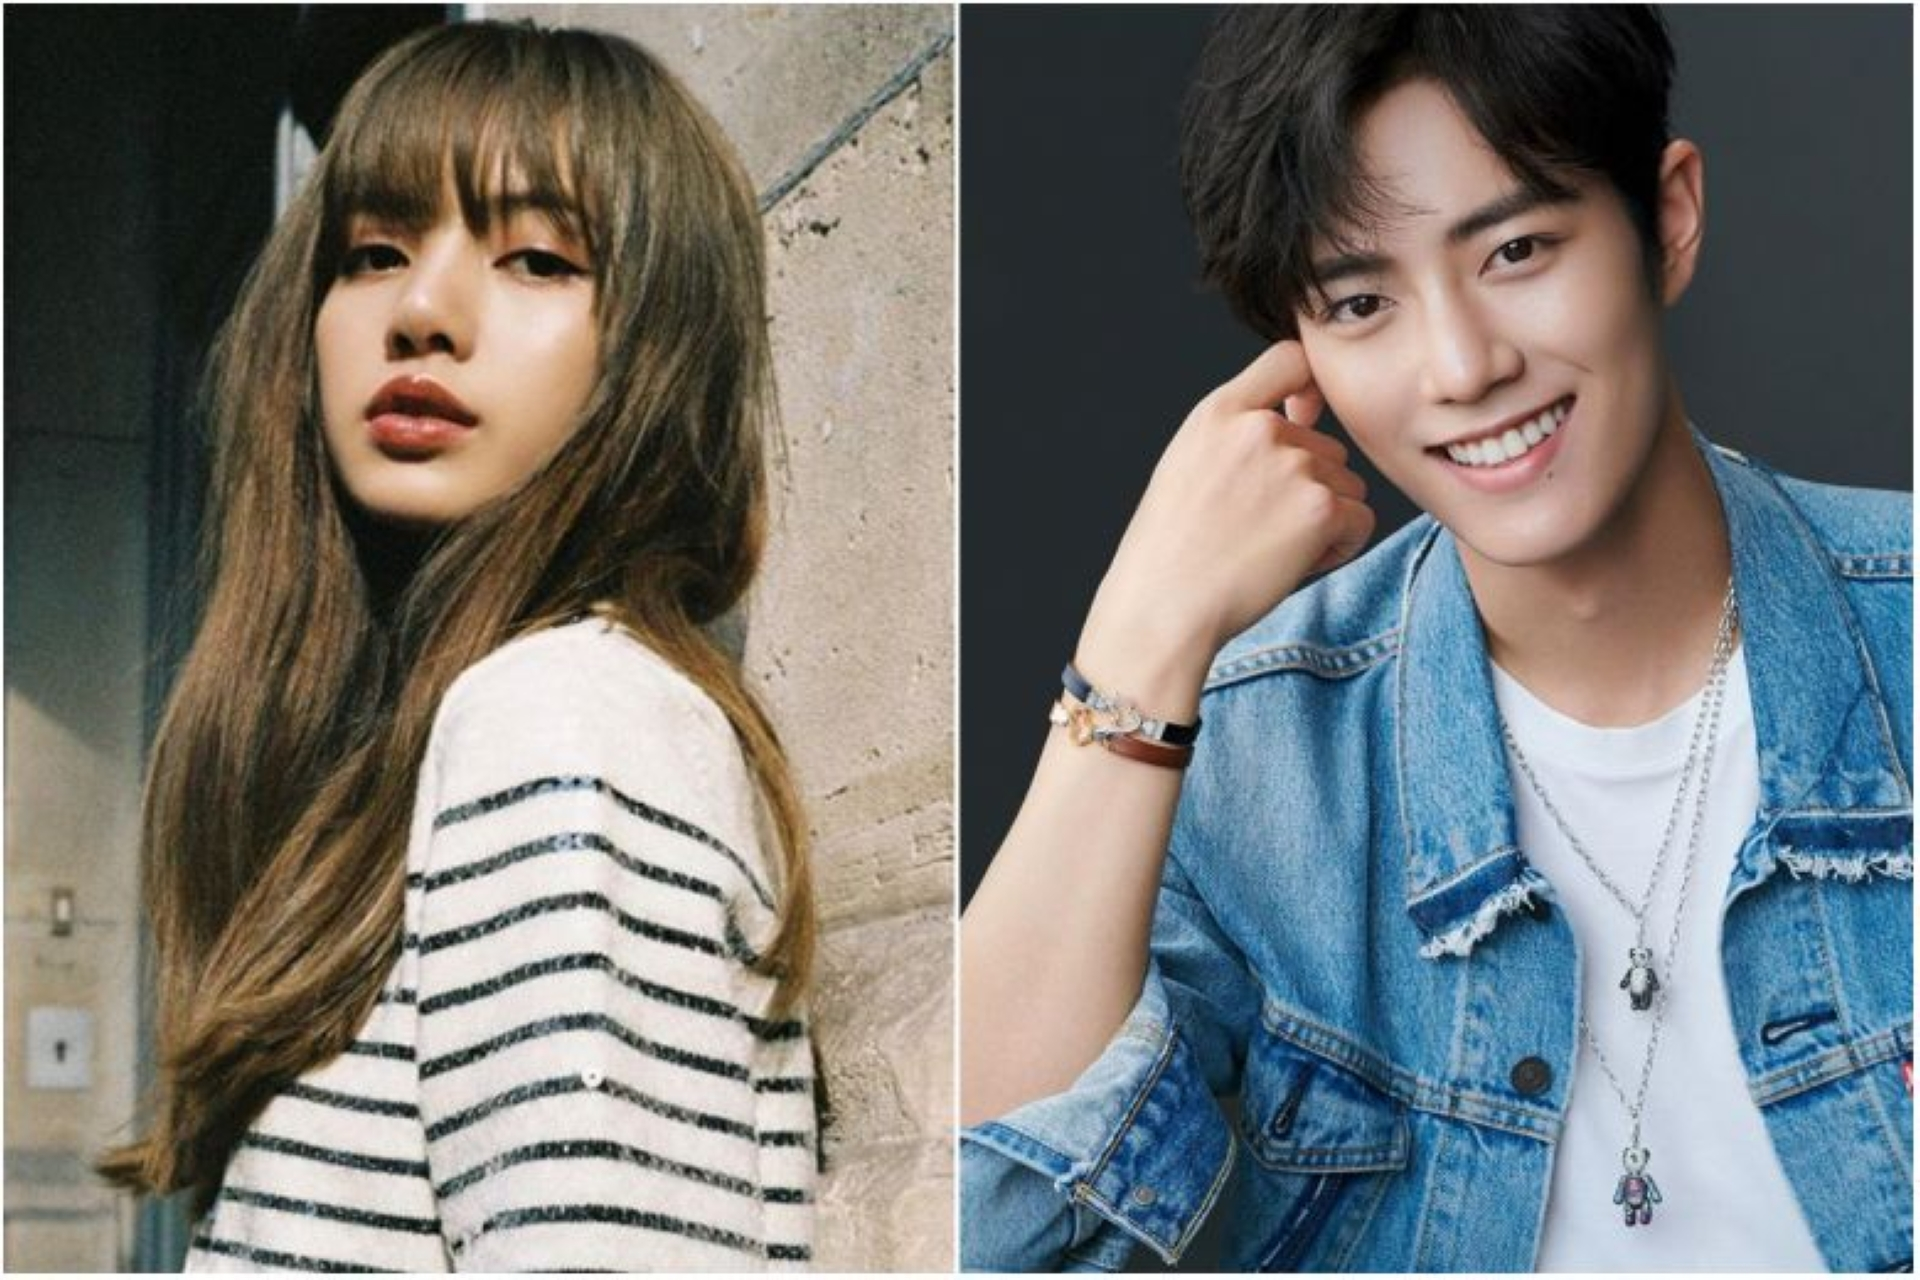 Blackpink S Lisa Is Asia S Most Beautiful Woman Actor Xiao Zhan Rated Most Handsome The Star